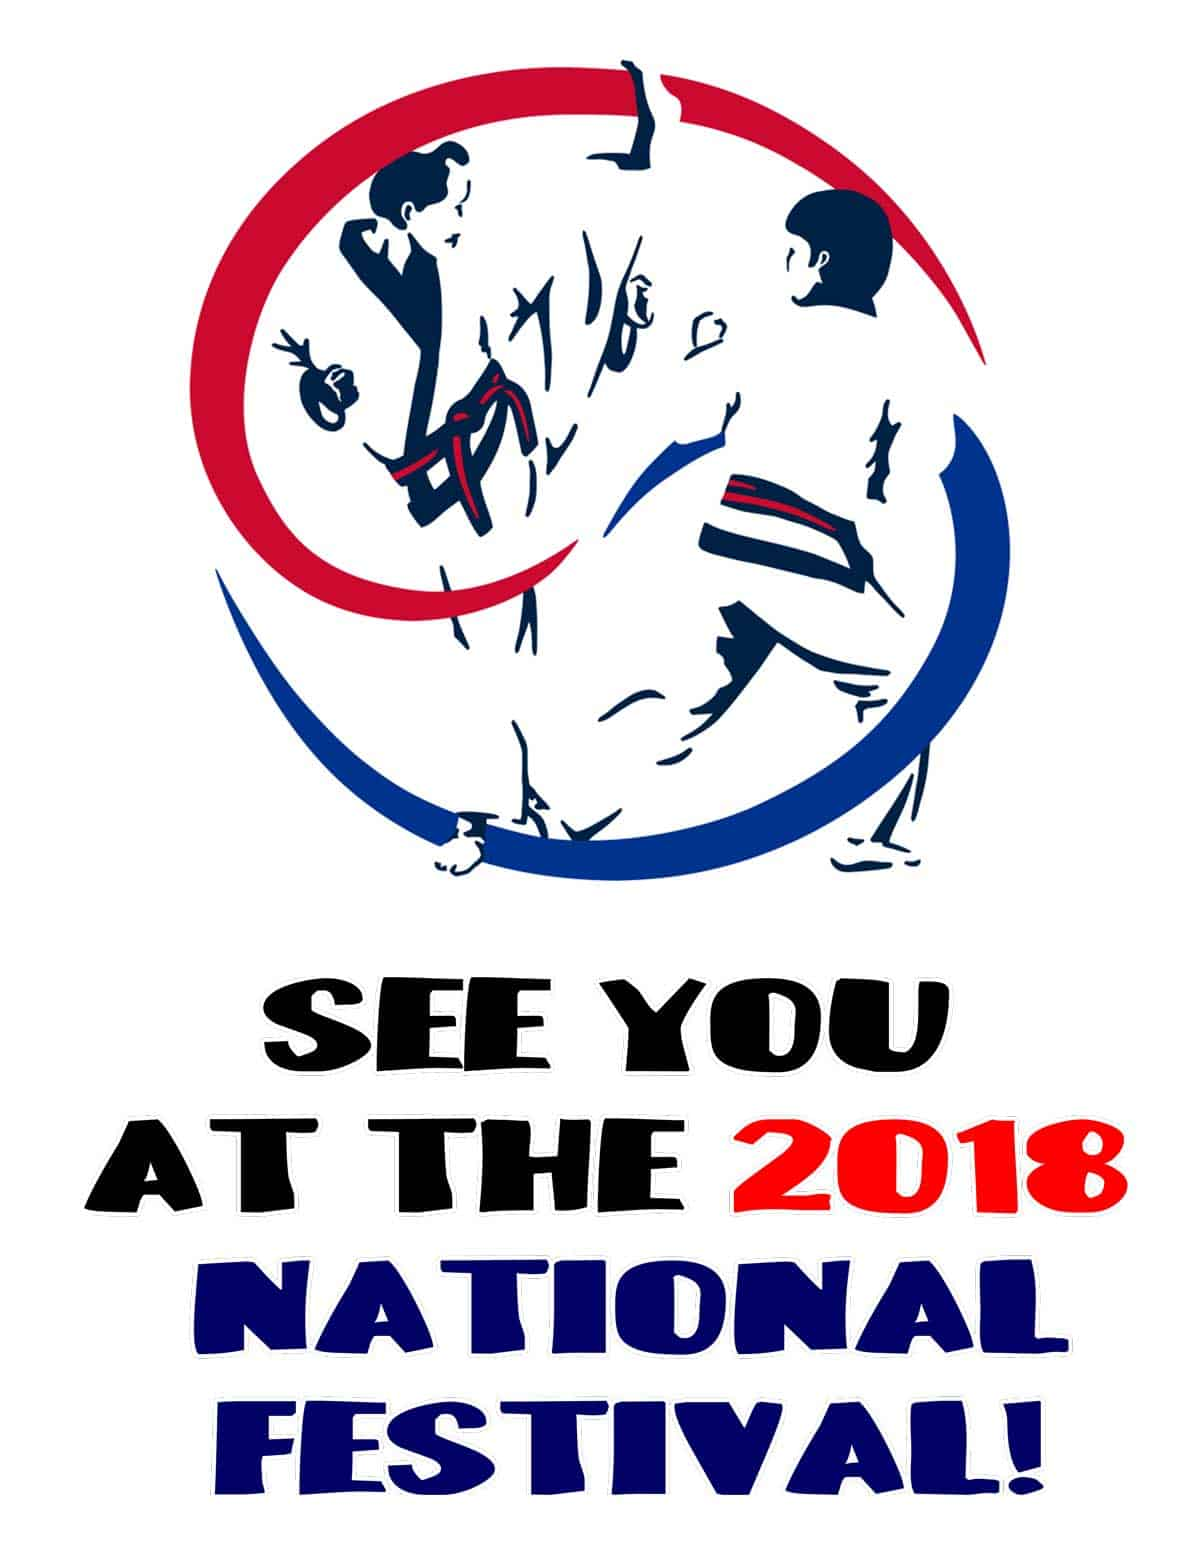 See You At The 2018 National Festival!